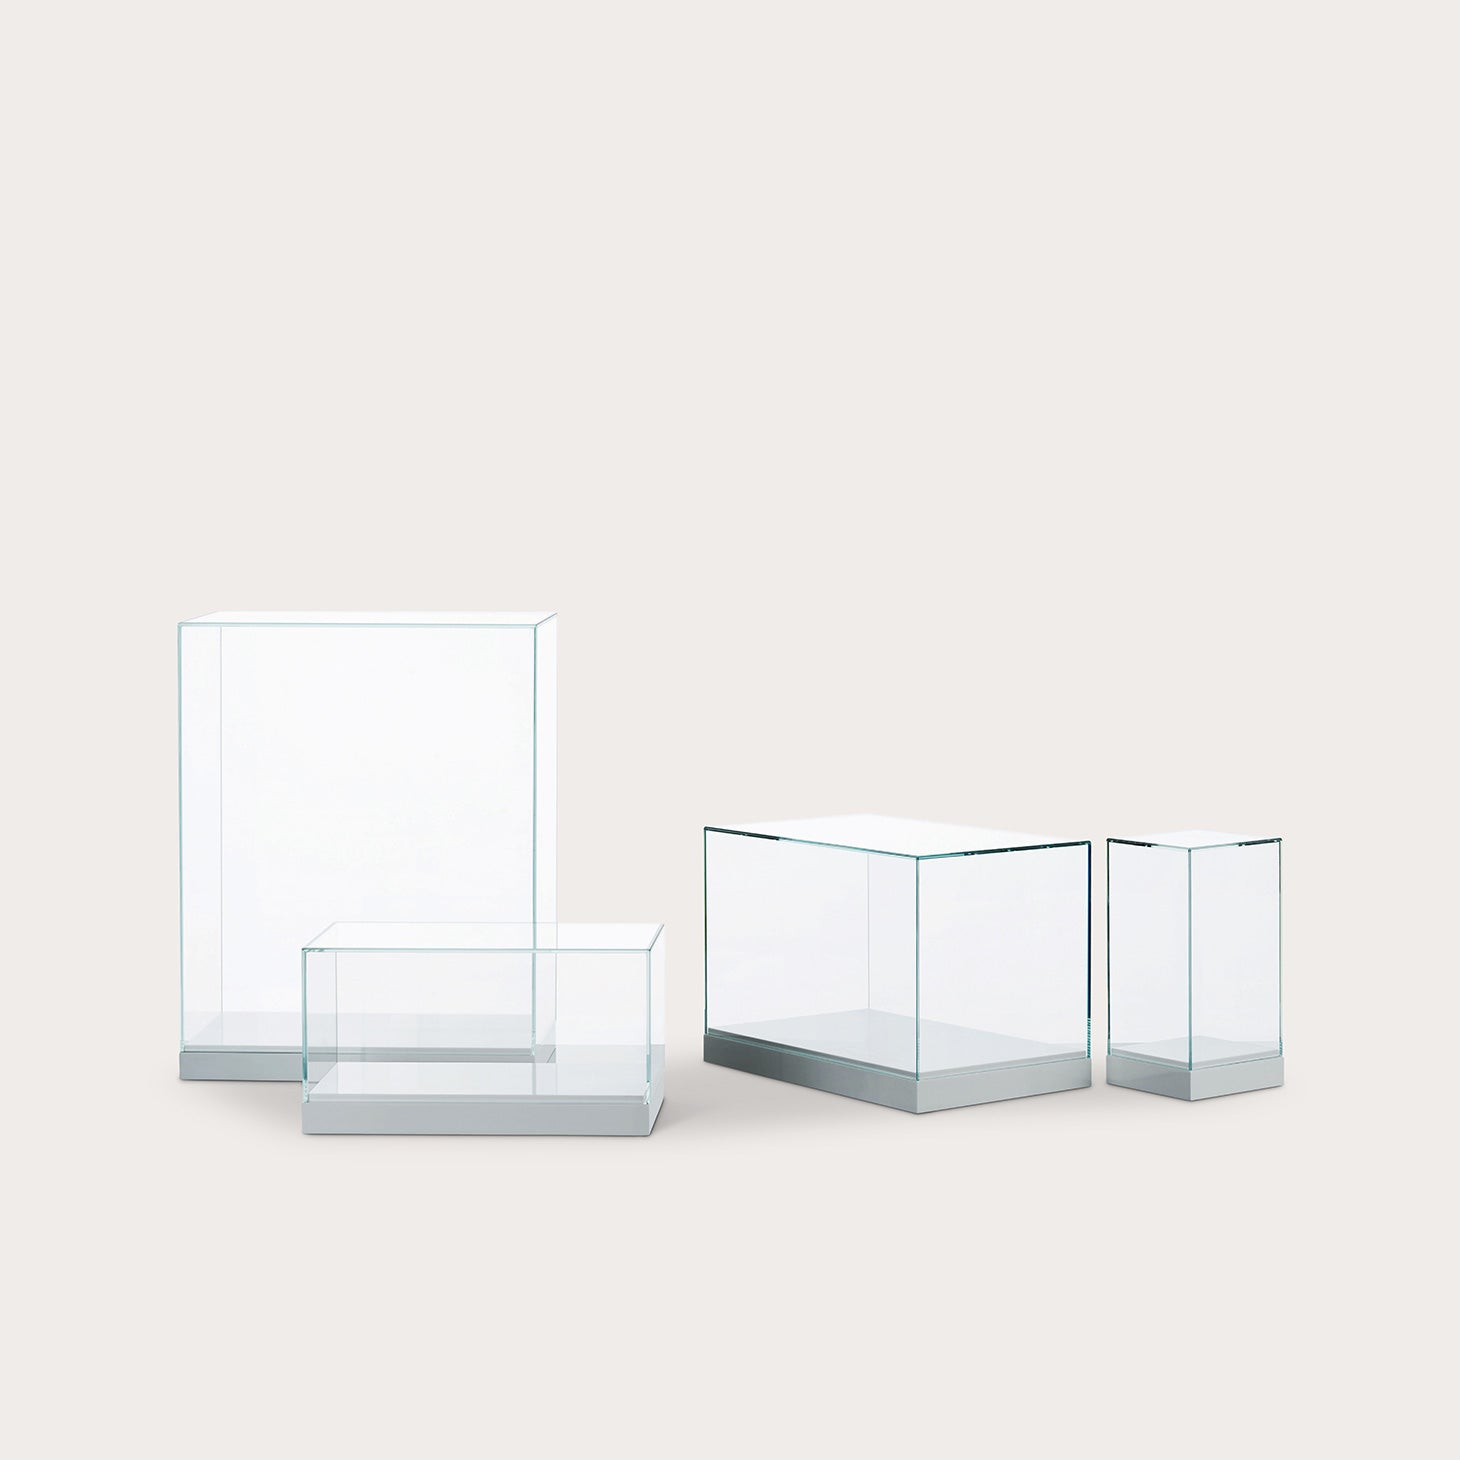 Teche Accessories Piero Lissoni Designer Furniture Sku: 288-100-10098